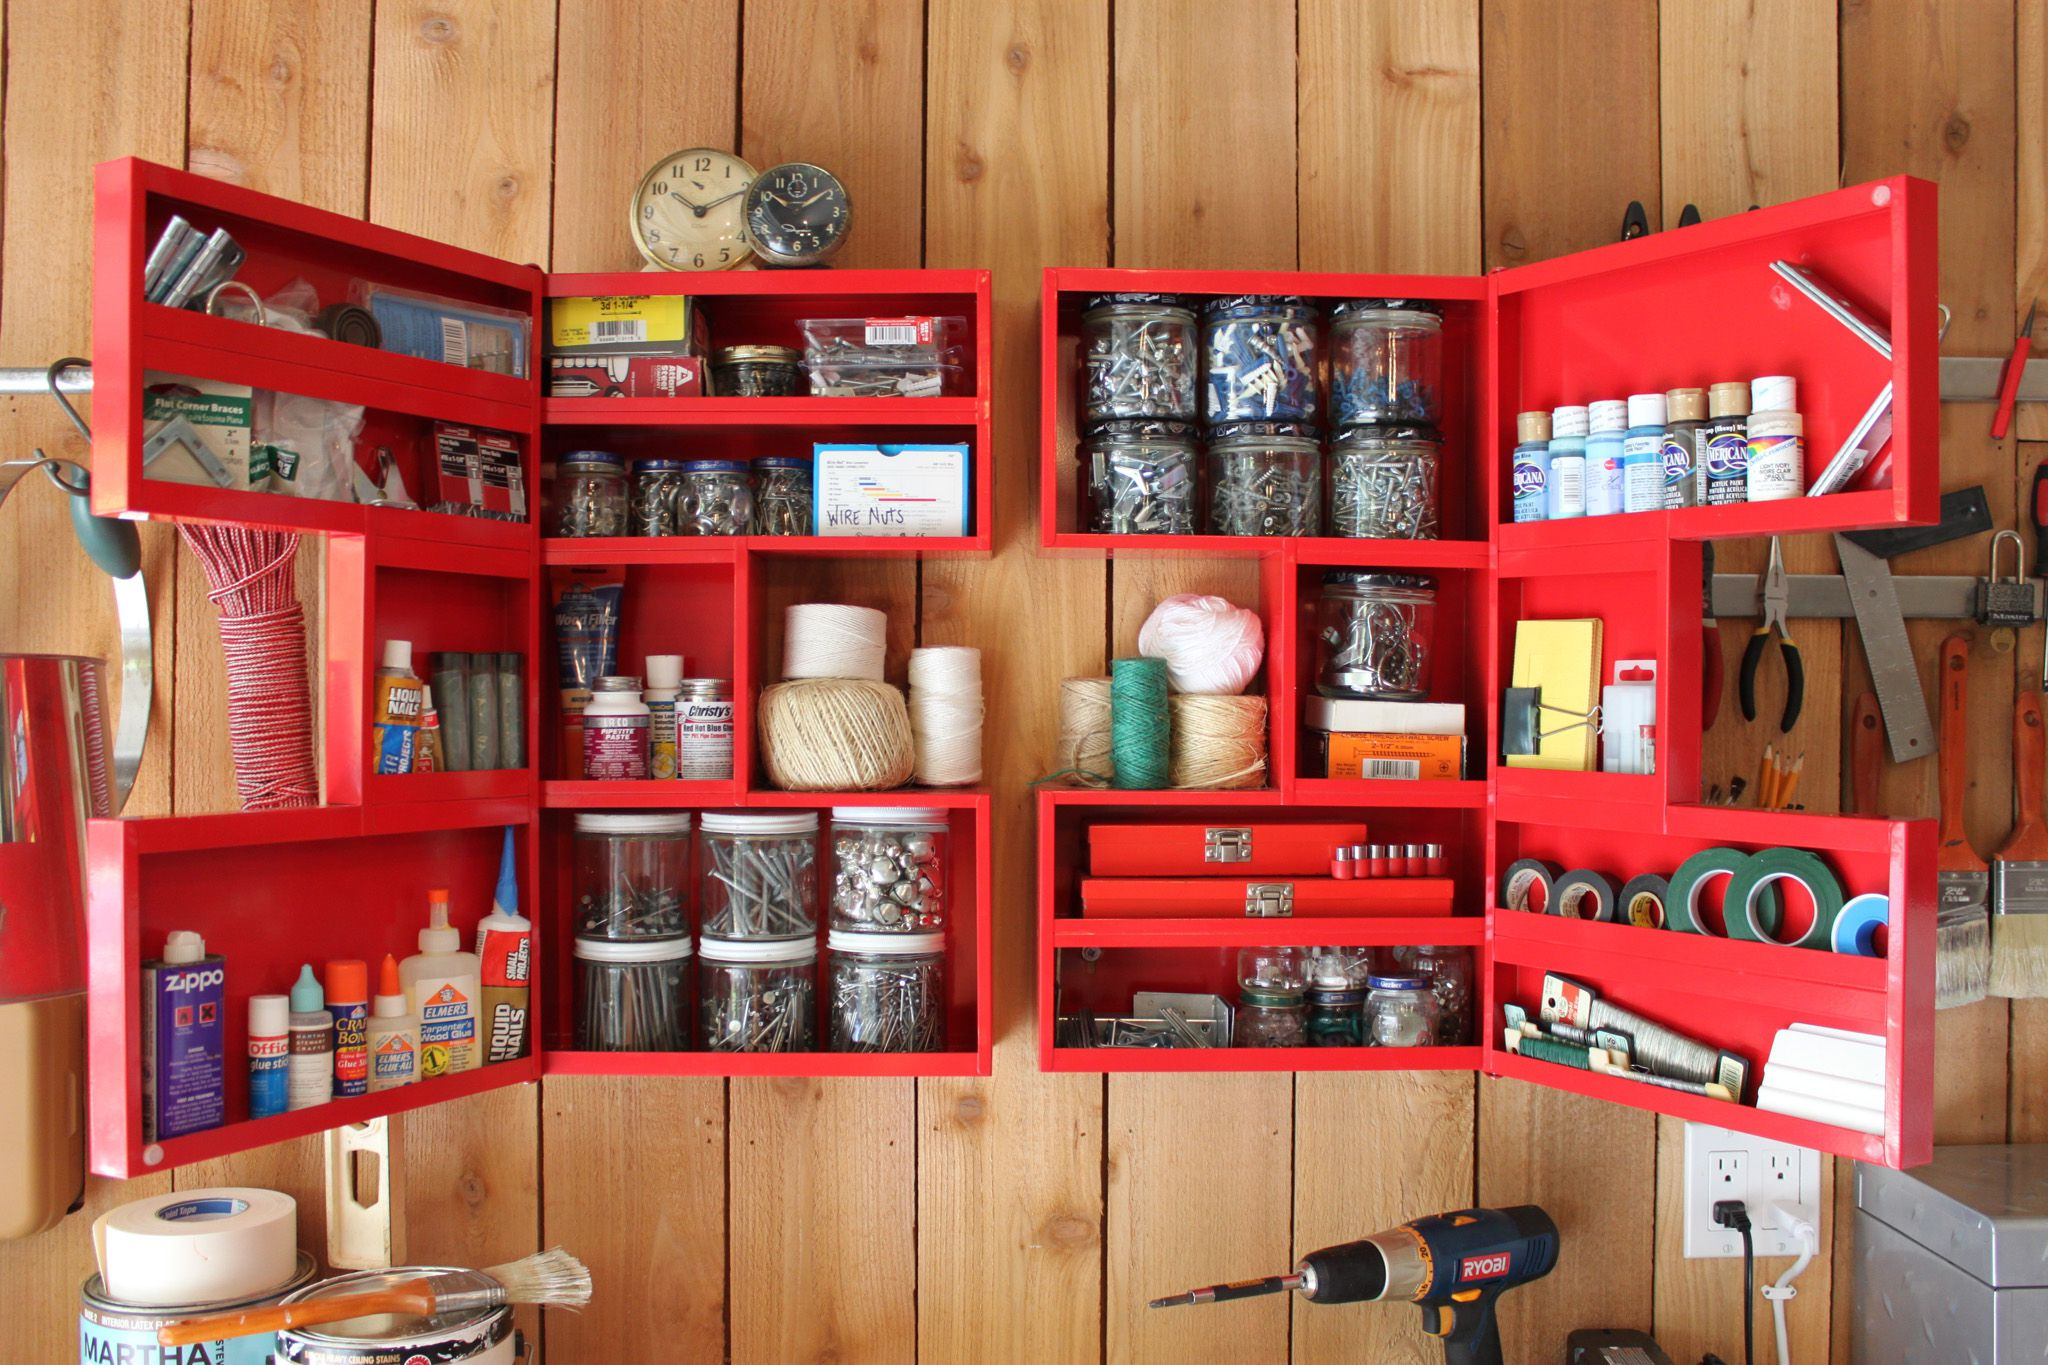 Symmetrical Red Wall Storage Completing Smart Garage Organization Idea for Small Items